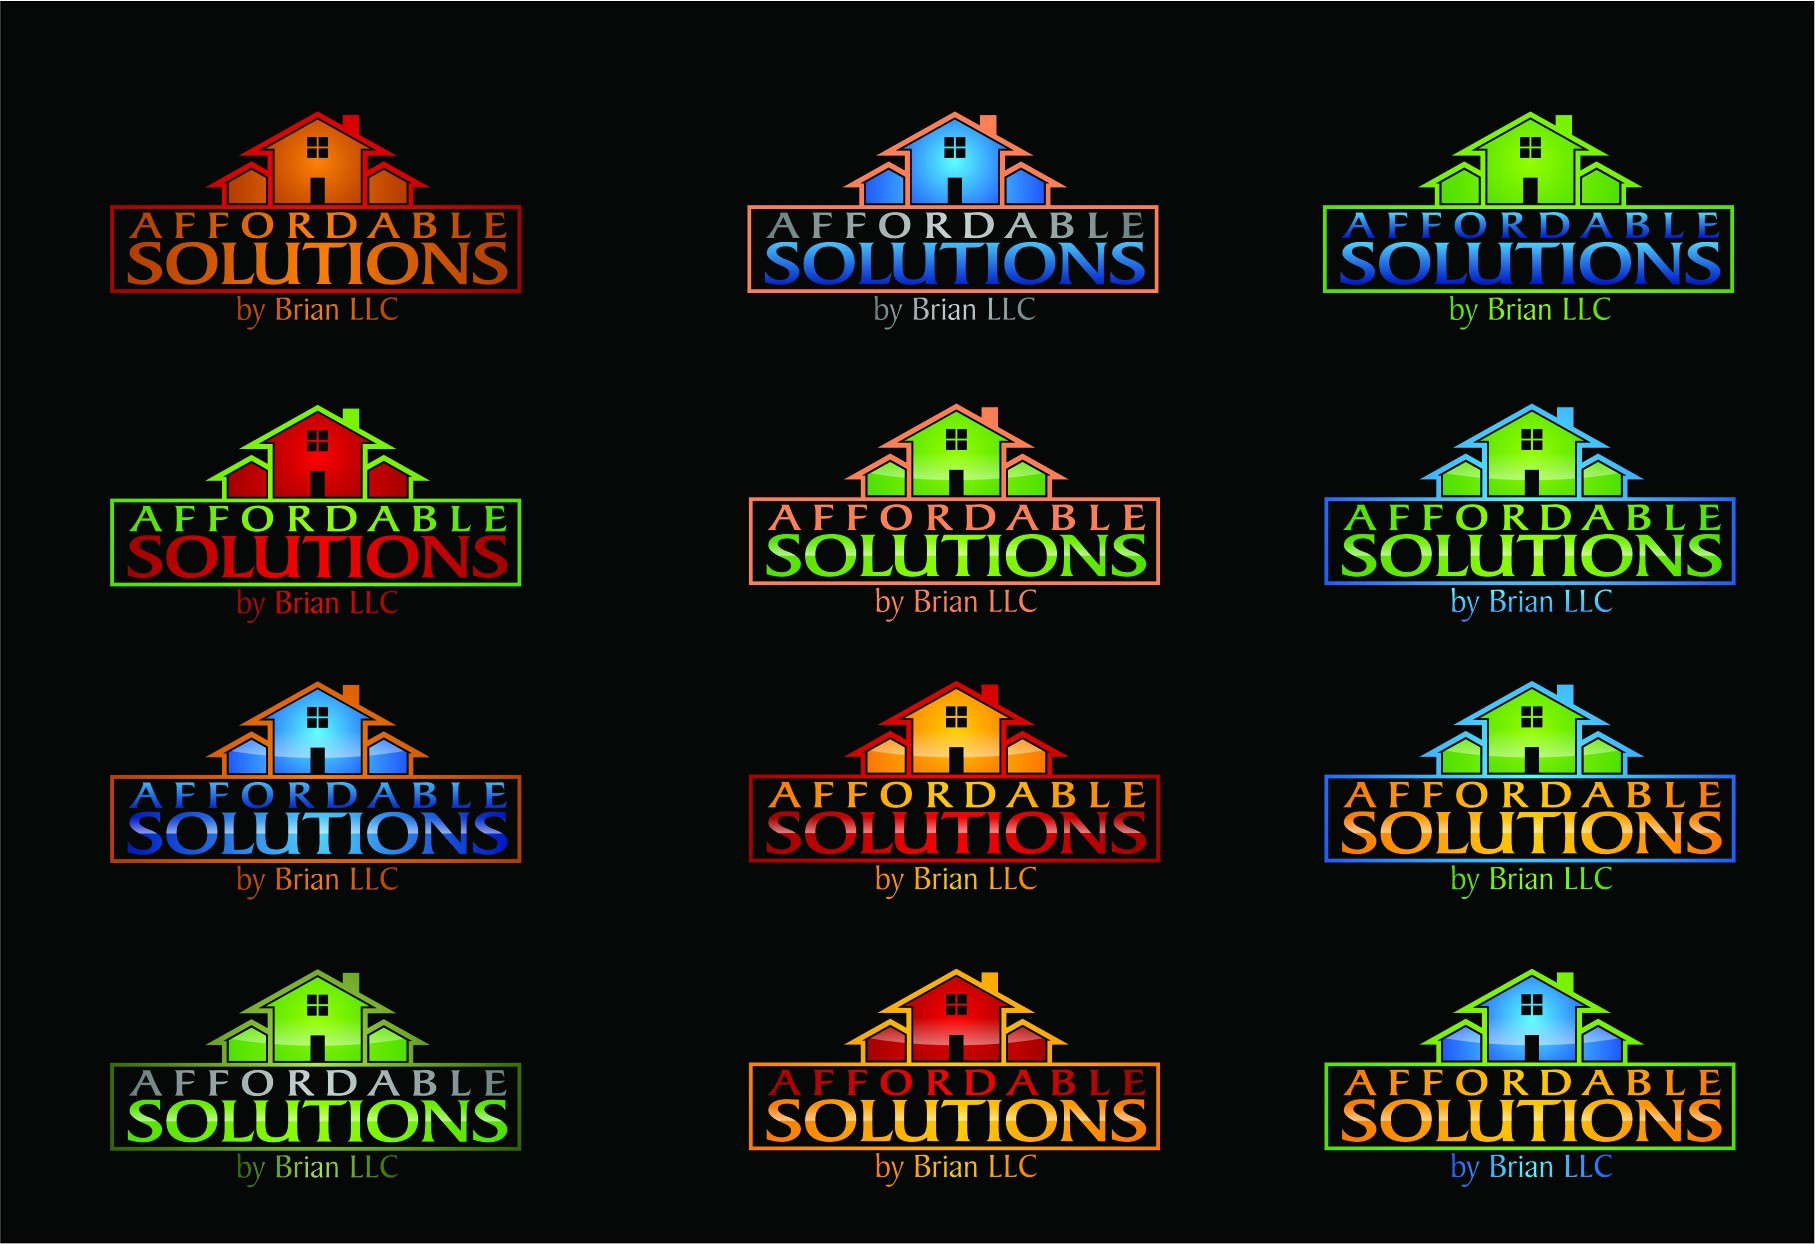 Affordable Solutions by Brian, LLC needs a new logo